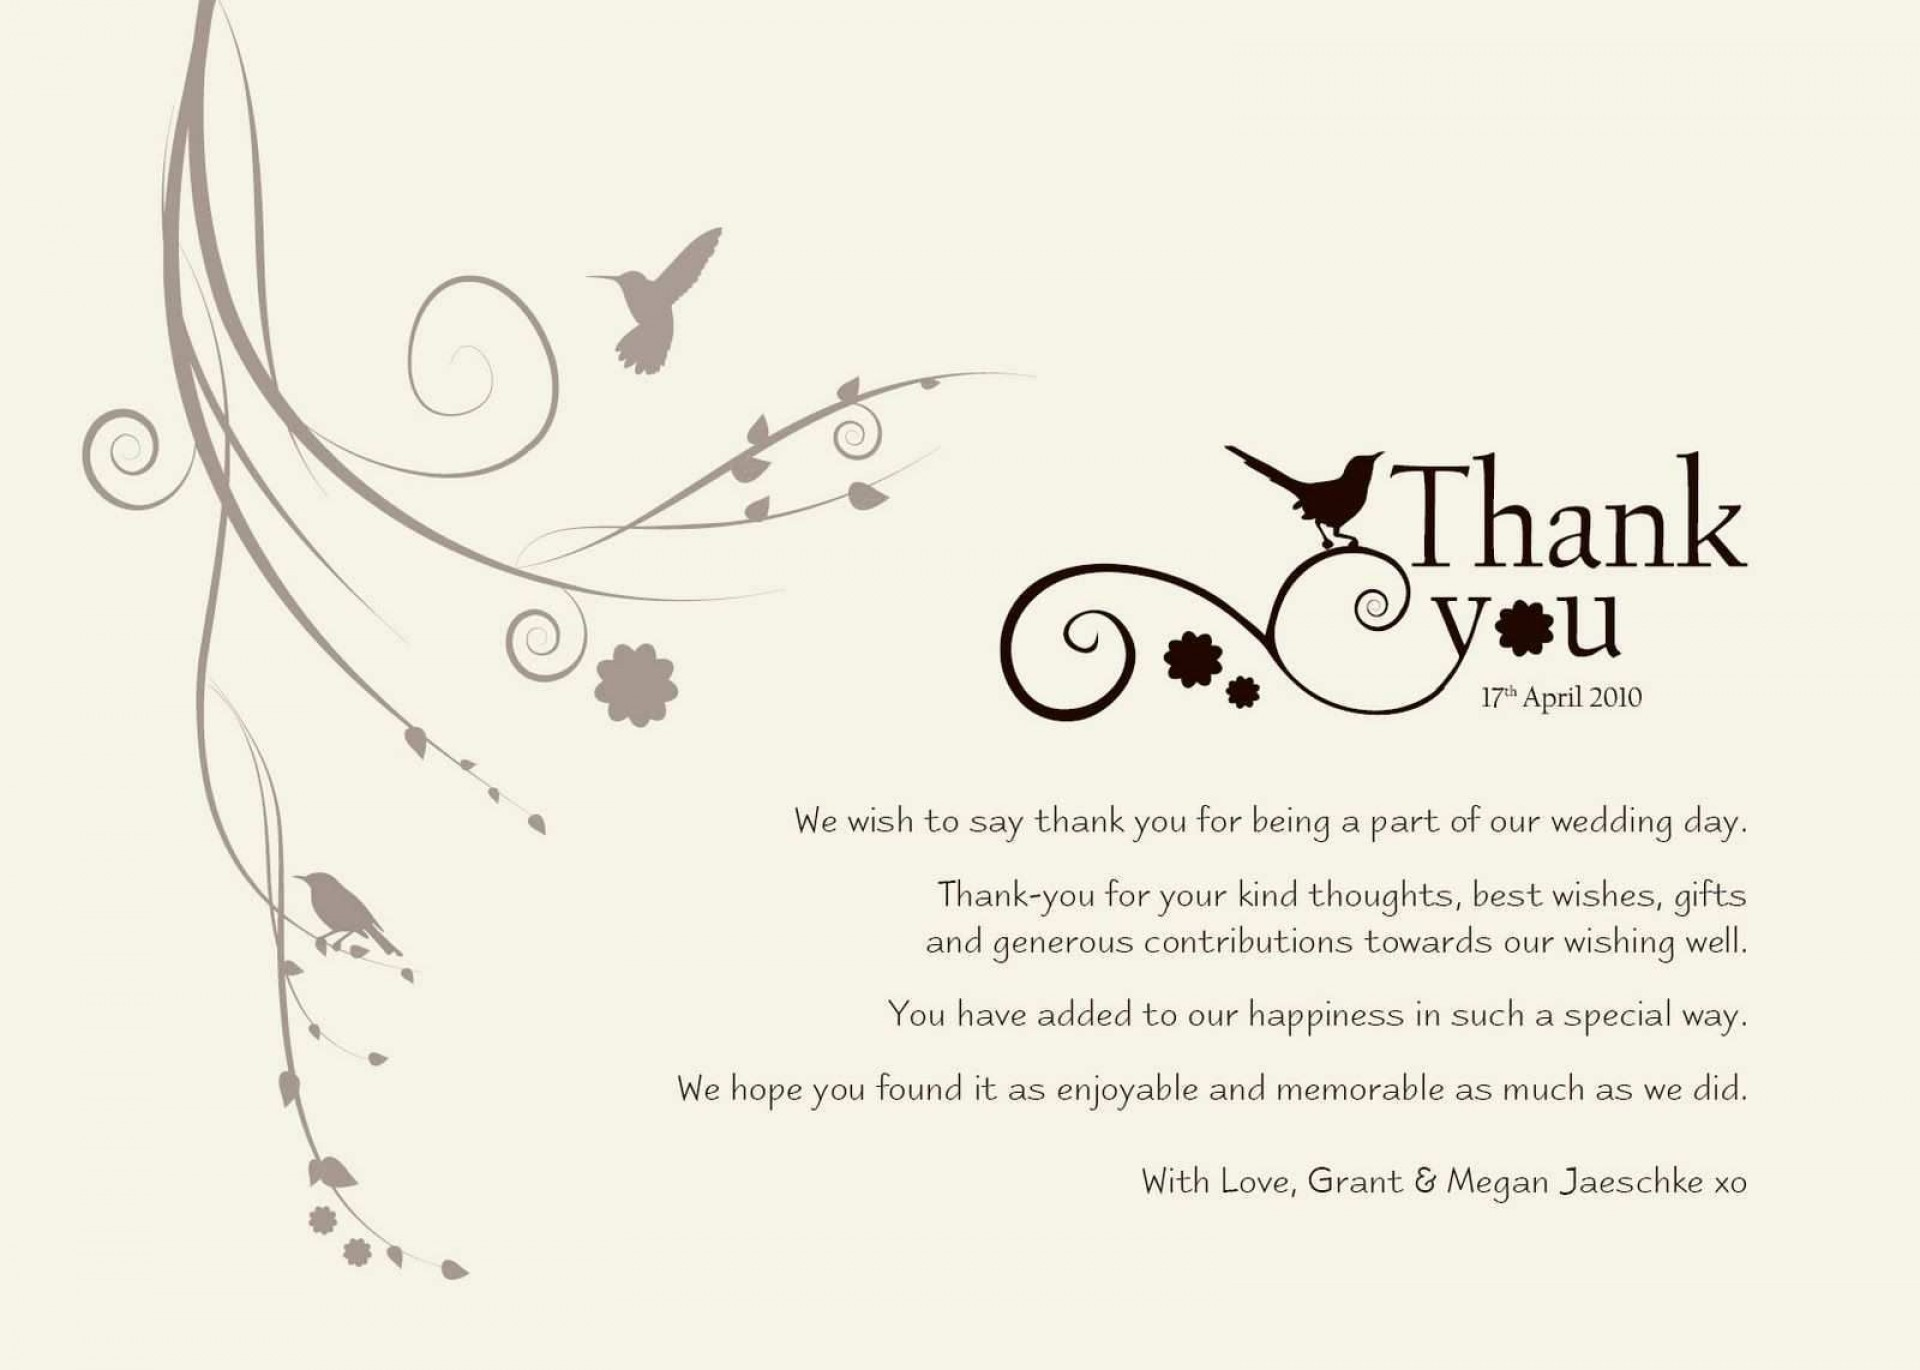 000 Unusual Thank You Note Template Word 2010 High Resolution 1920